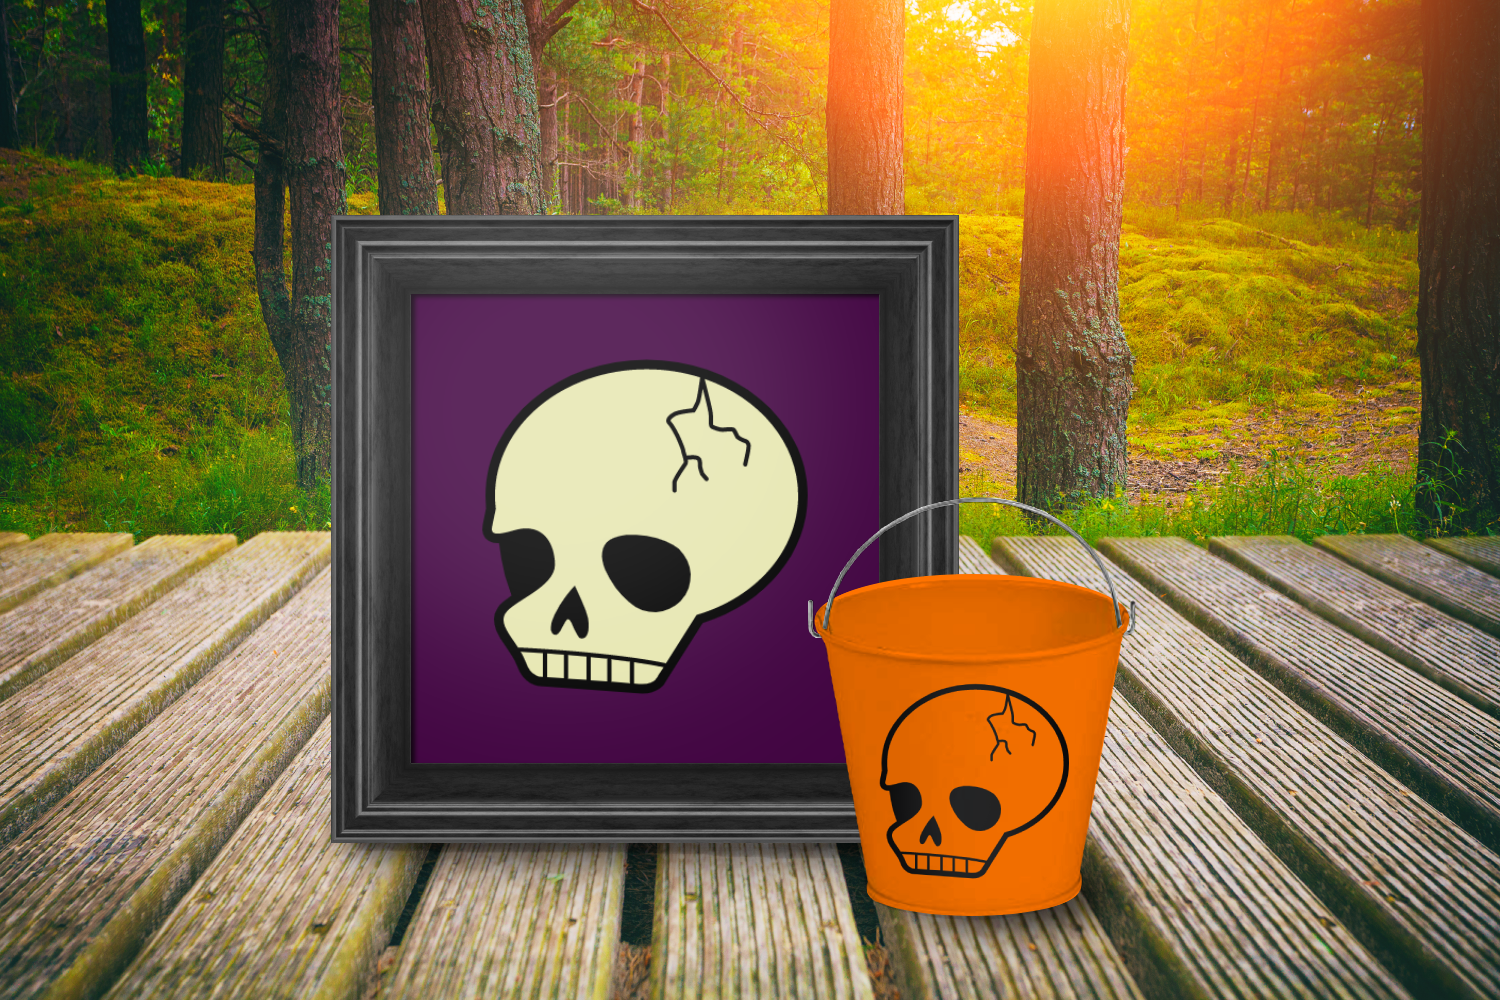 Spooky Cute Halloween Skull Svg Png Dxf By Designed By Geeks